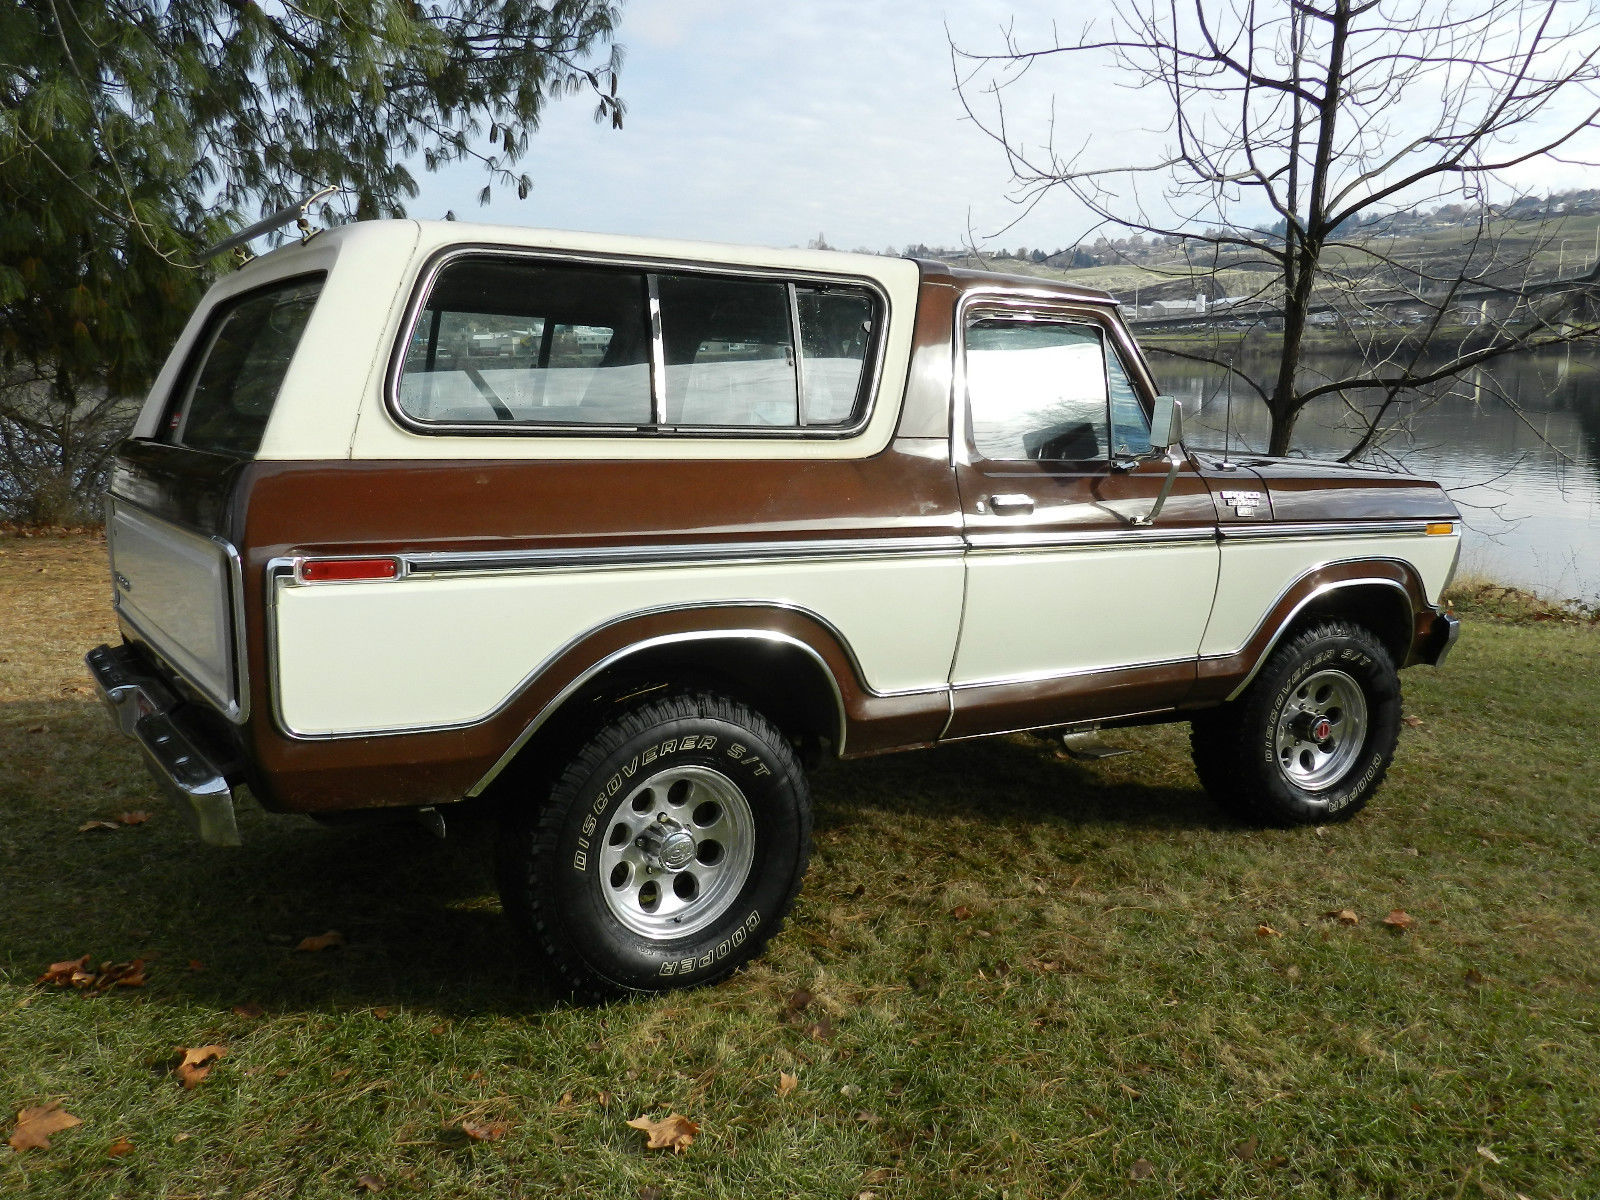 ford f150 bronco wiring diagram toyota landcruiser 79 series 1979 4x4 xlt rare orignal paint and body